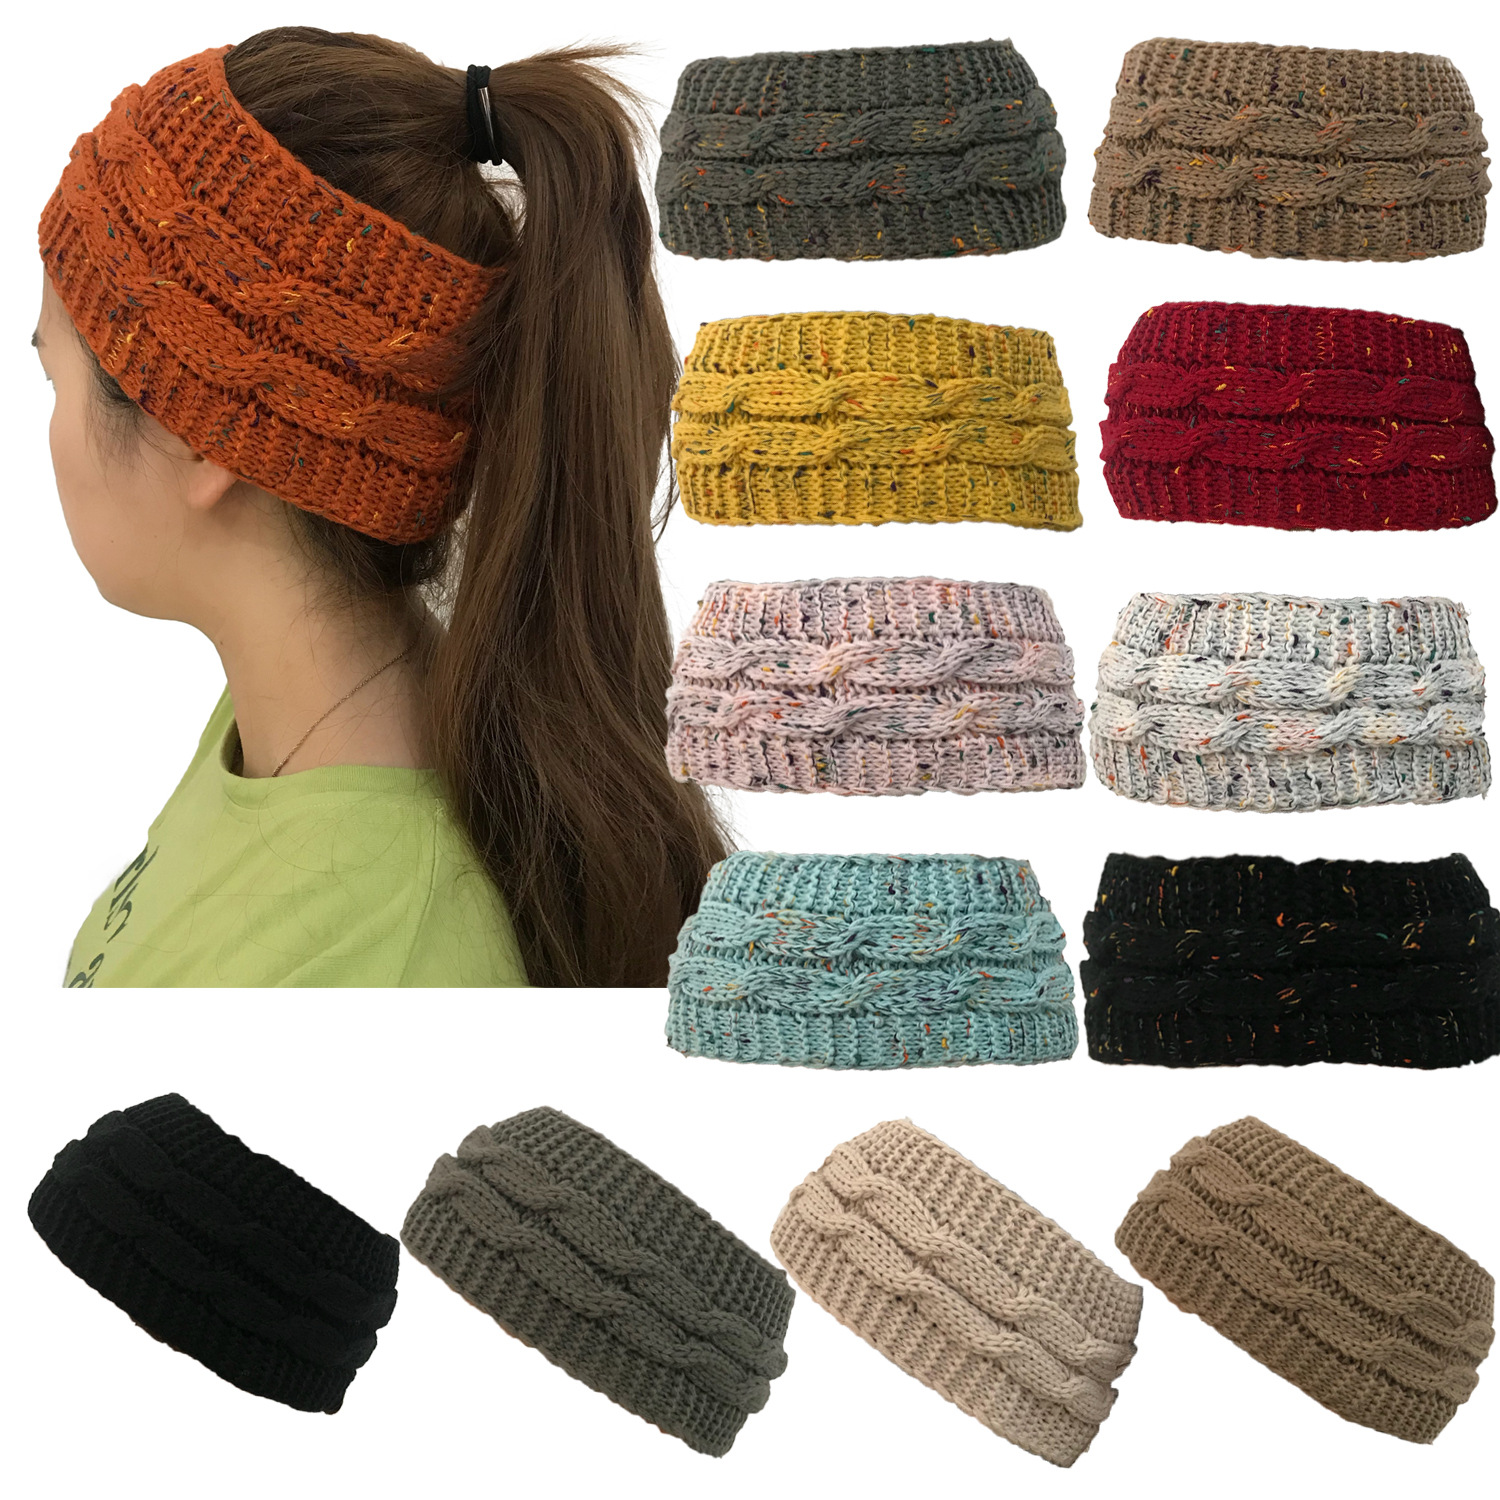 ed57ac60 US $1.33 20% OFF|Ponytail Beanies Women Warm Winter Hat For Women Beanie  Knitted Head Wear Bun Hats Girl Skull Cap Bonnet Headwear czapki zimowe-in  ...